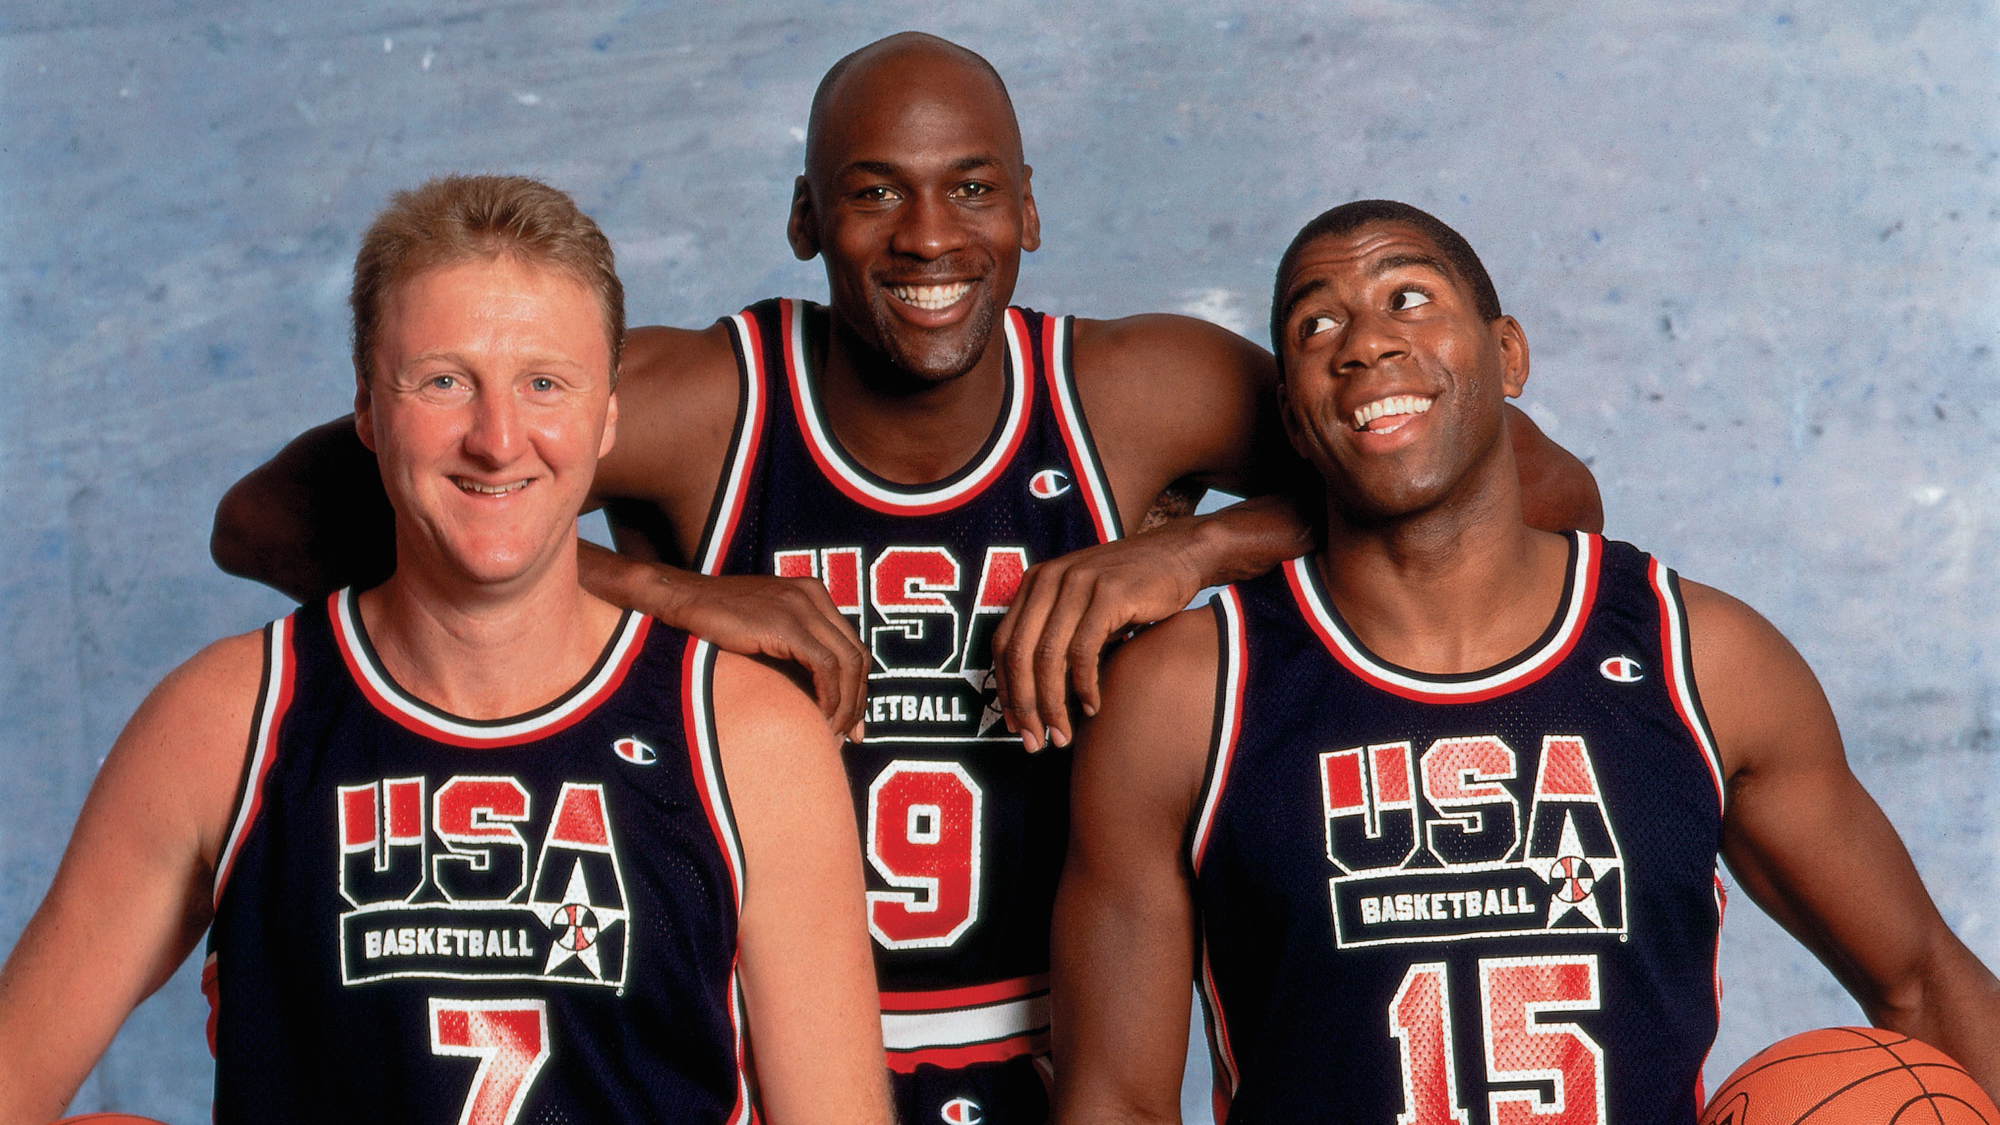 The disappointing 1988 games (bronze medal) were the last time U.S.A. basketball used amateurs